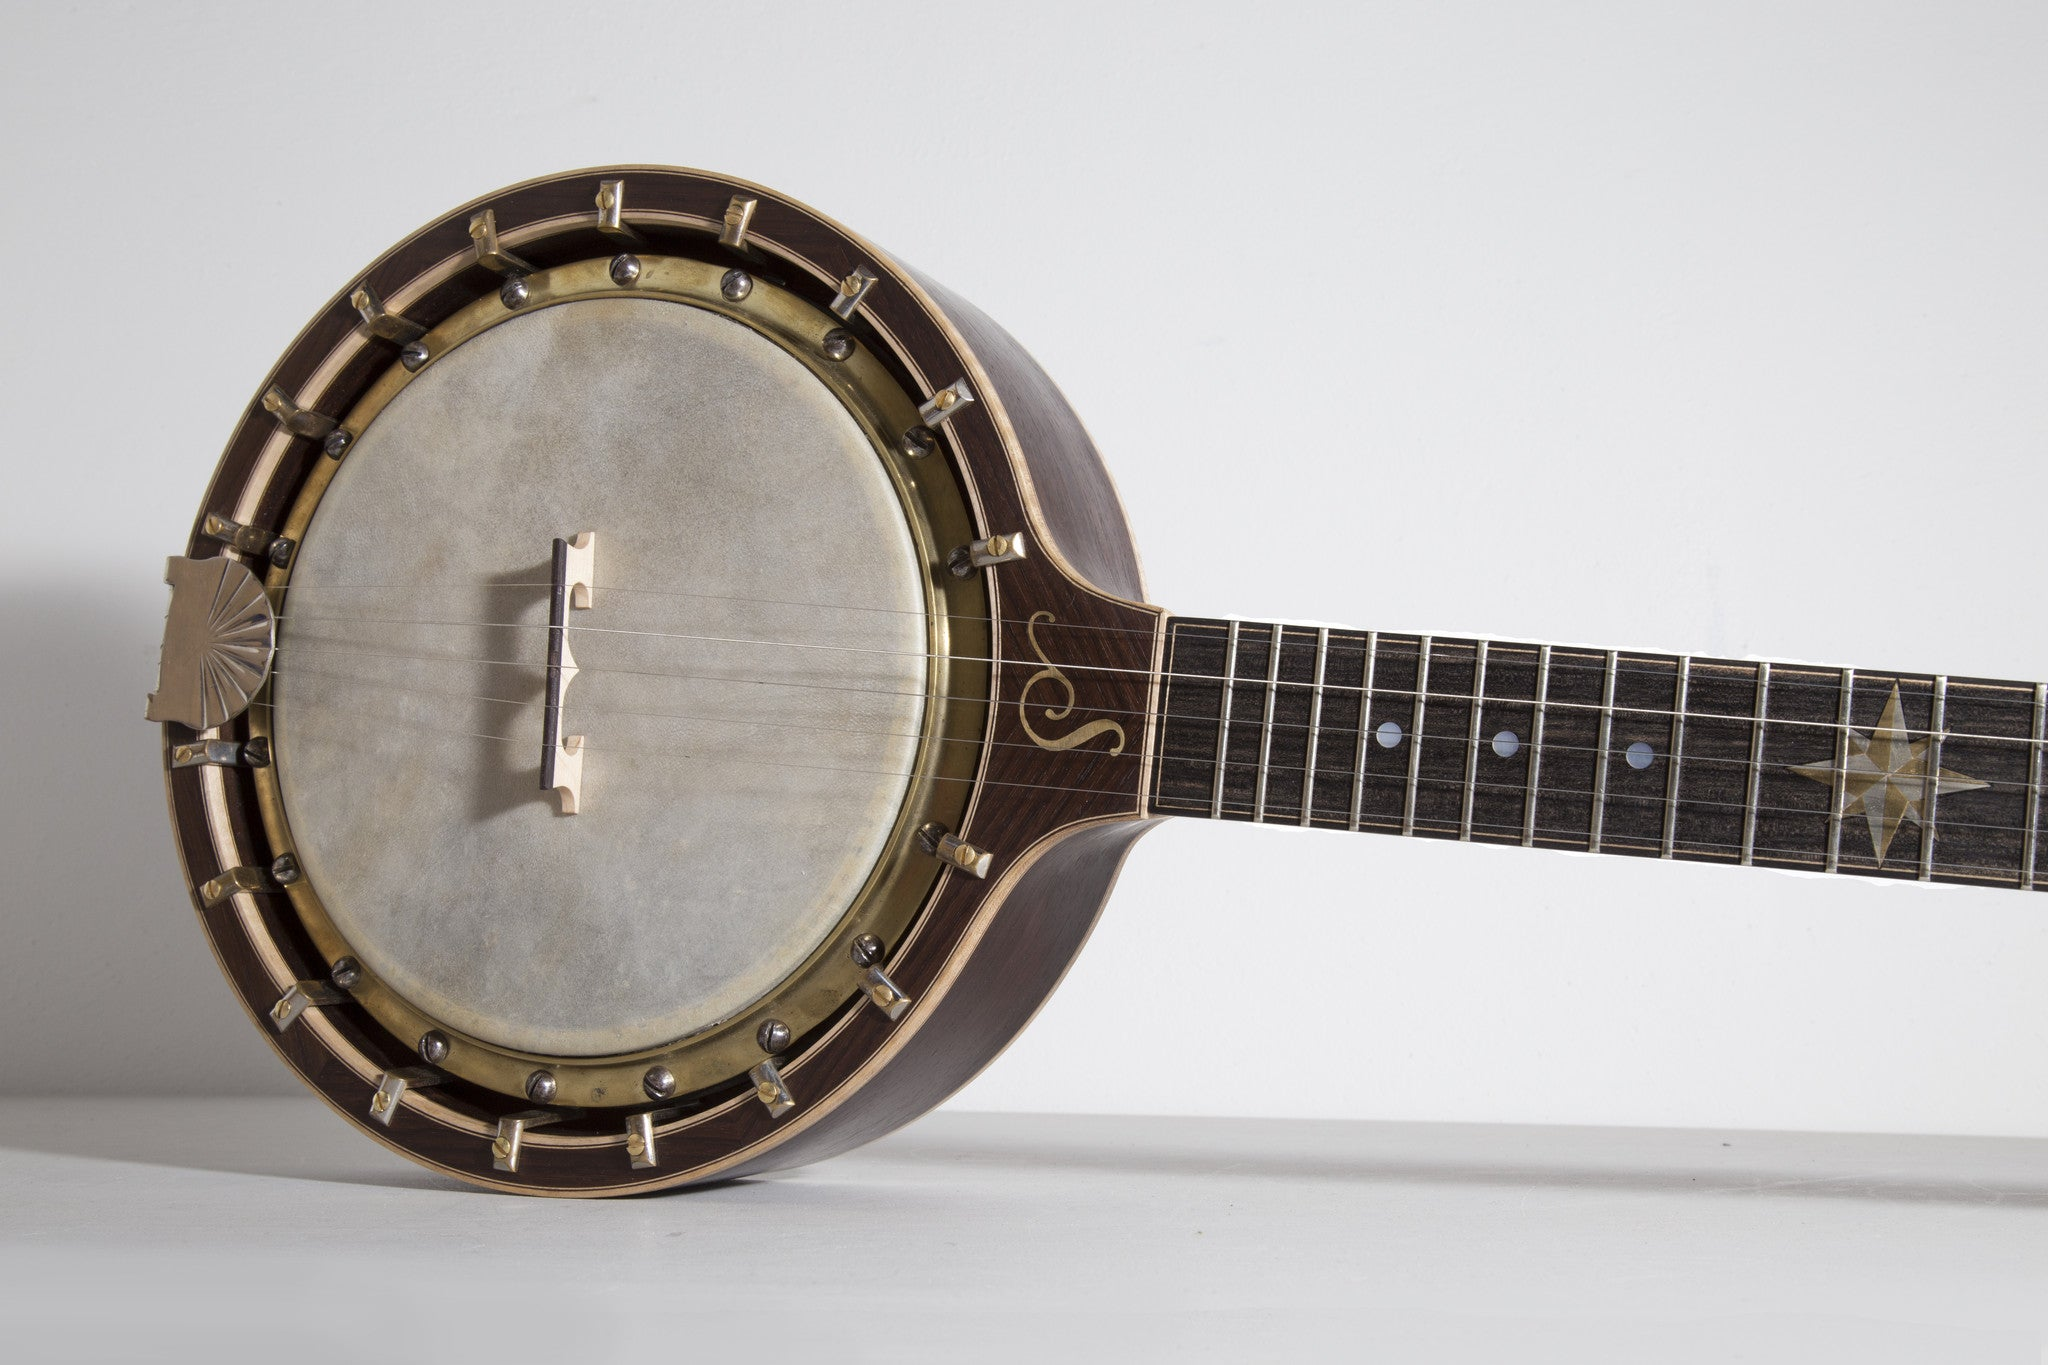 Shackleton Centenary Zither Banjo